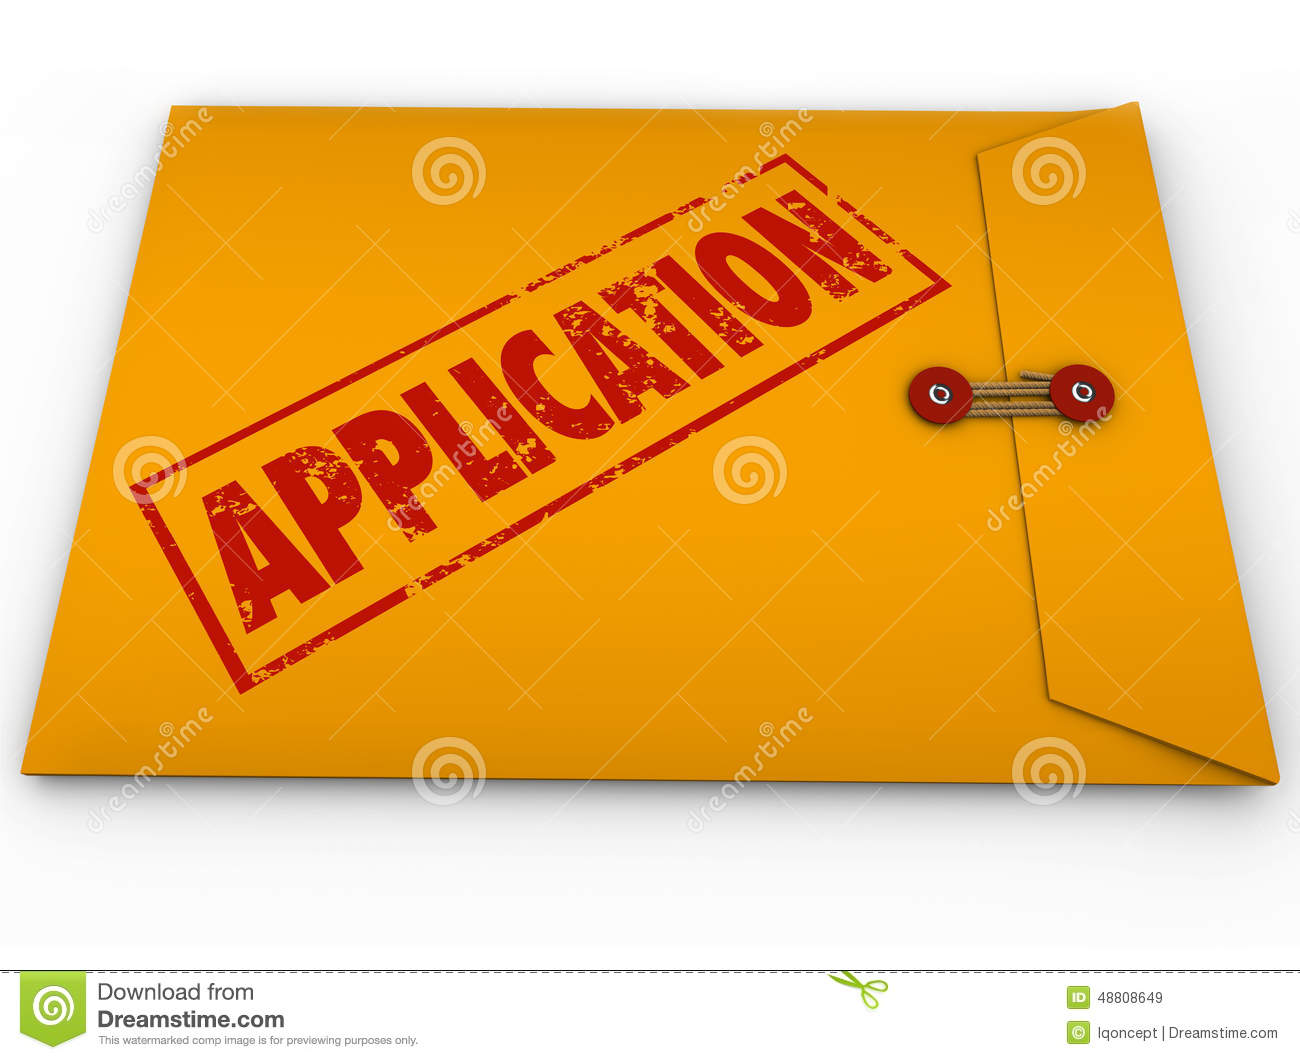 application yellow envelope submit apply job credit approval stock illustration